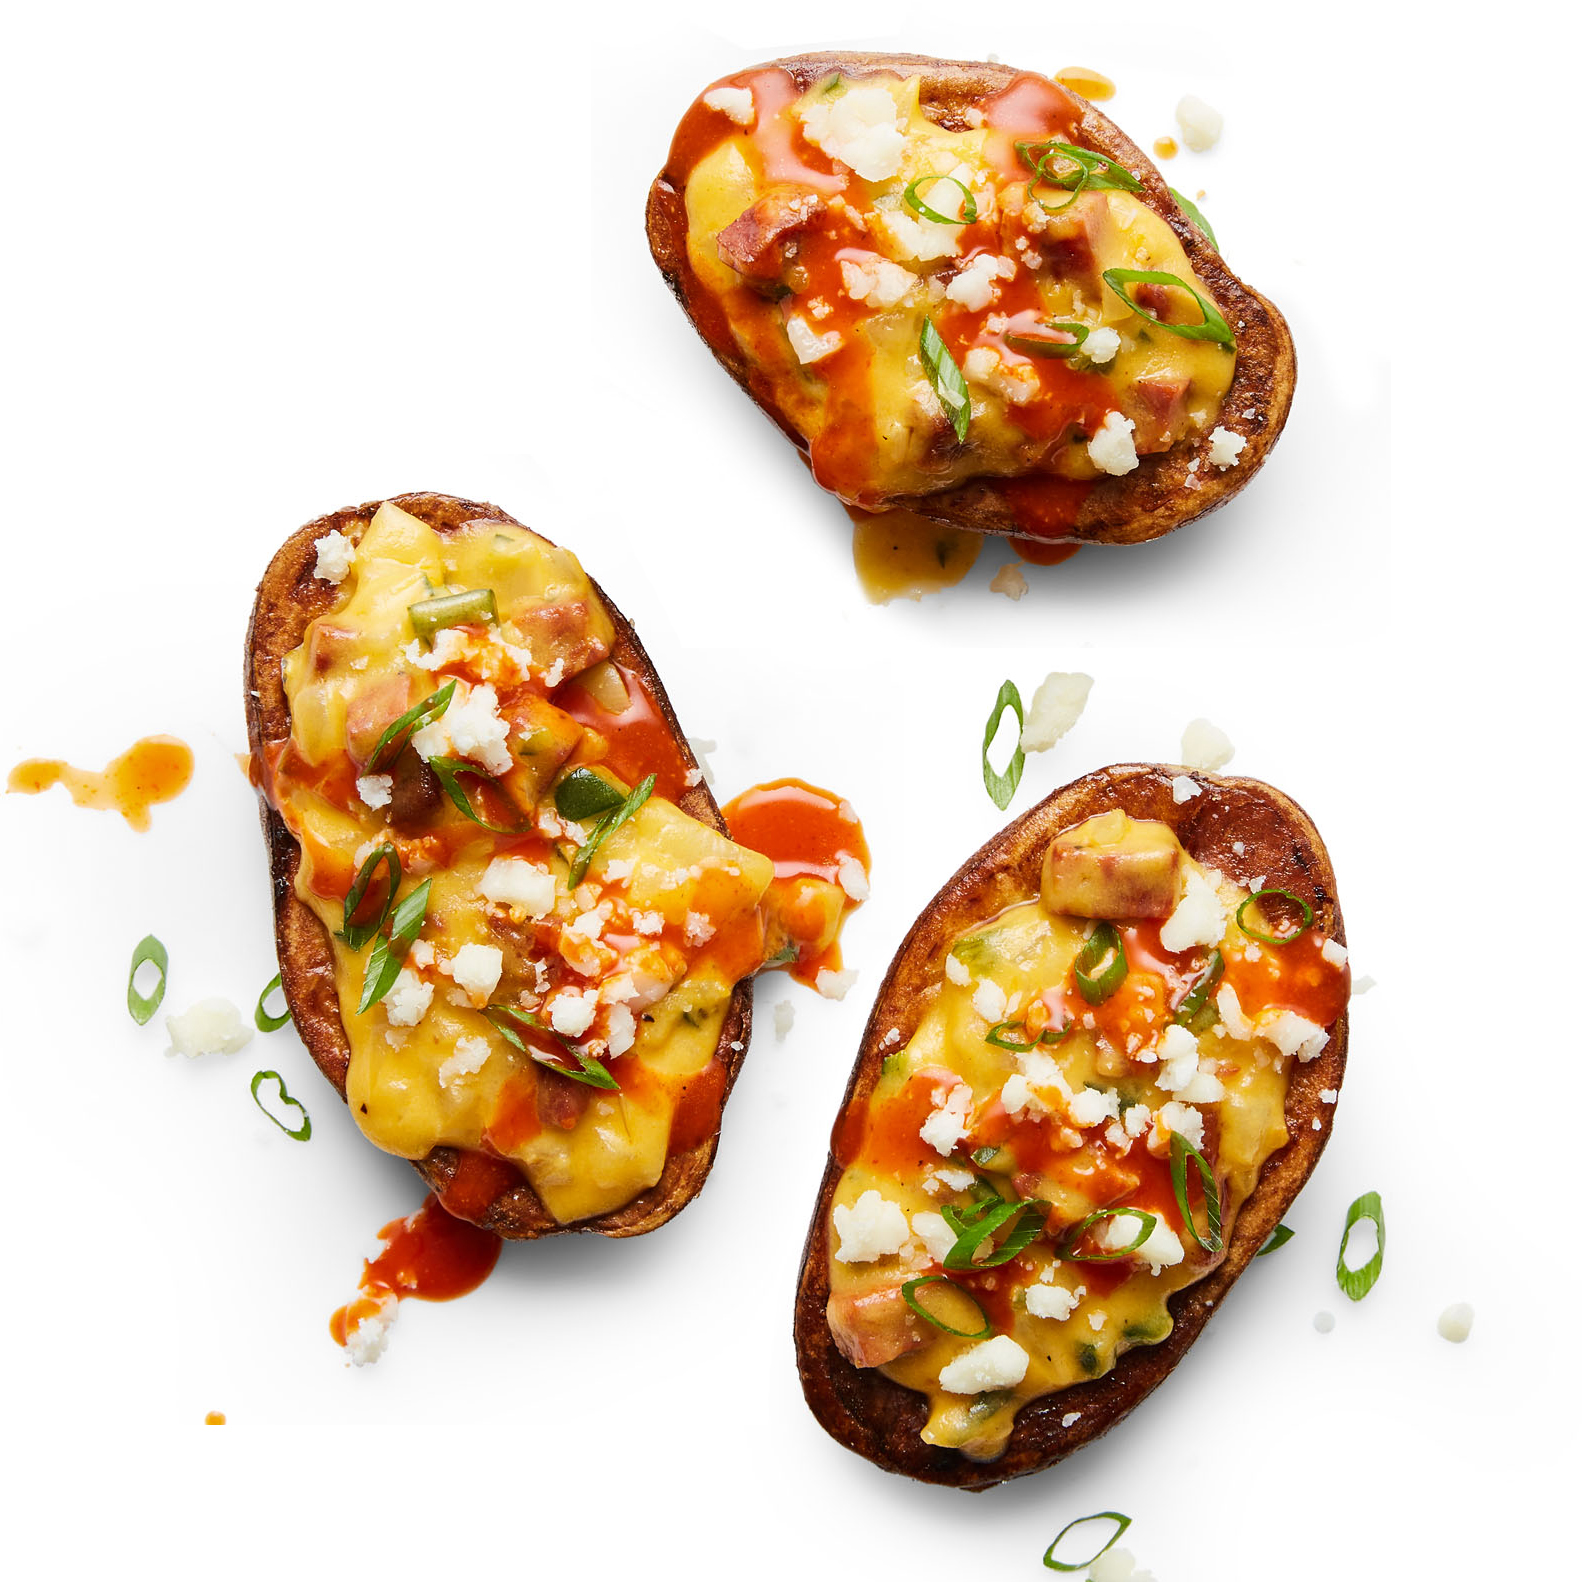 Spicy Queso Tater Skins